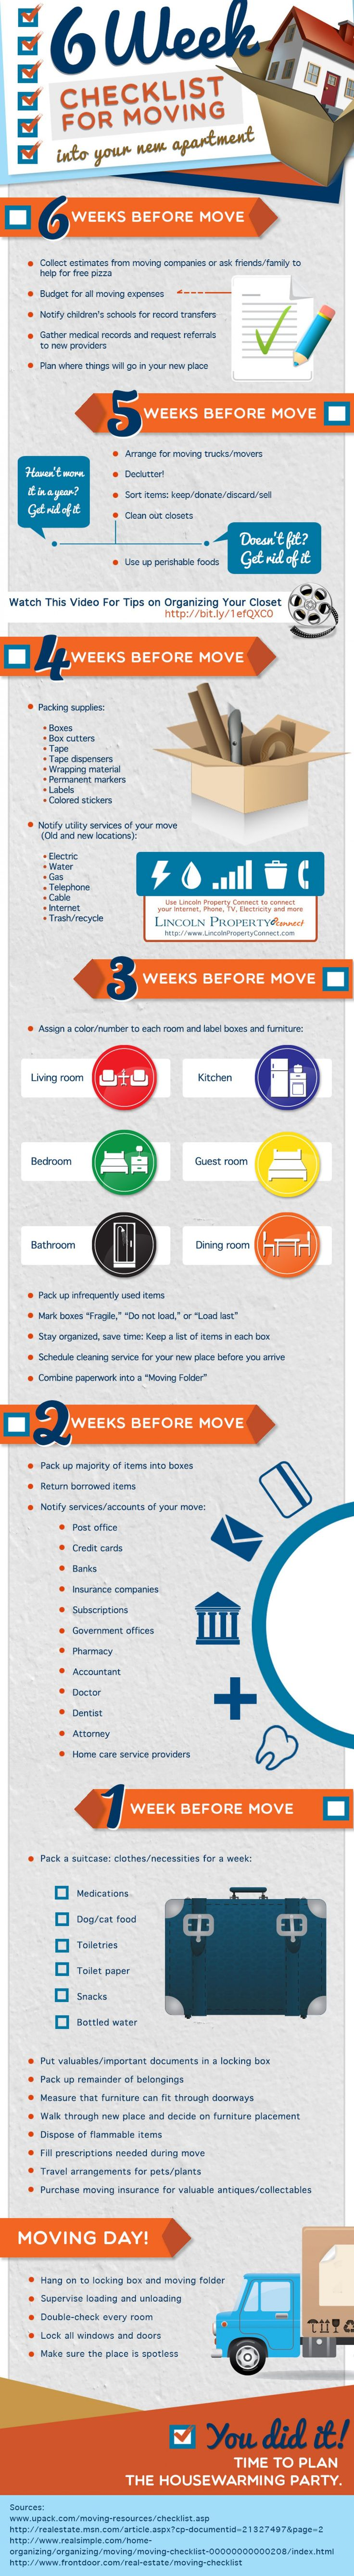 6 Week Checklist for Moving into Your New Apartment Infographic...thorough